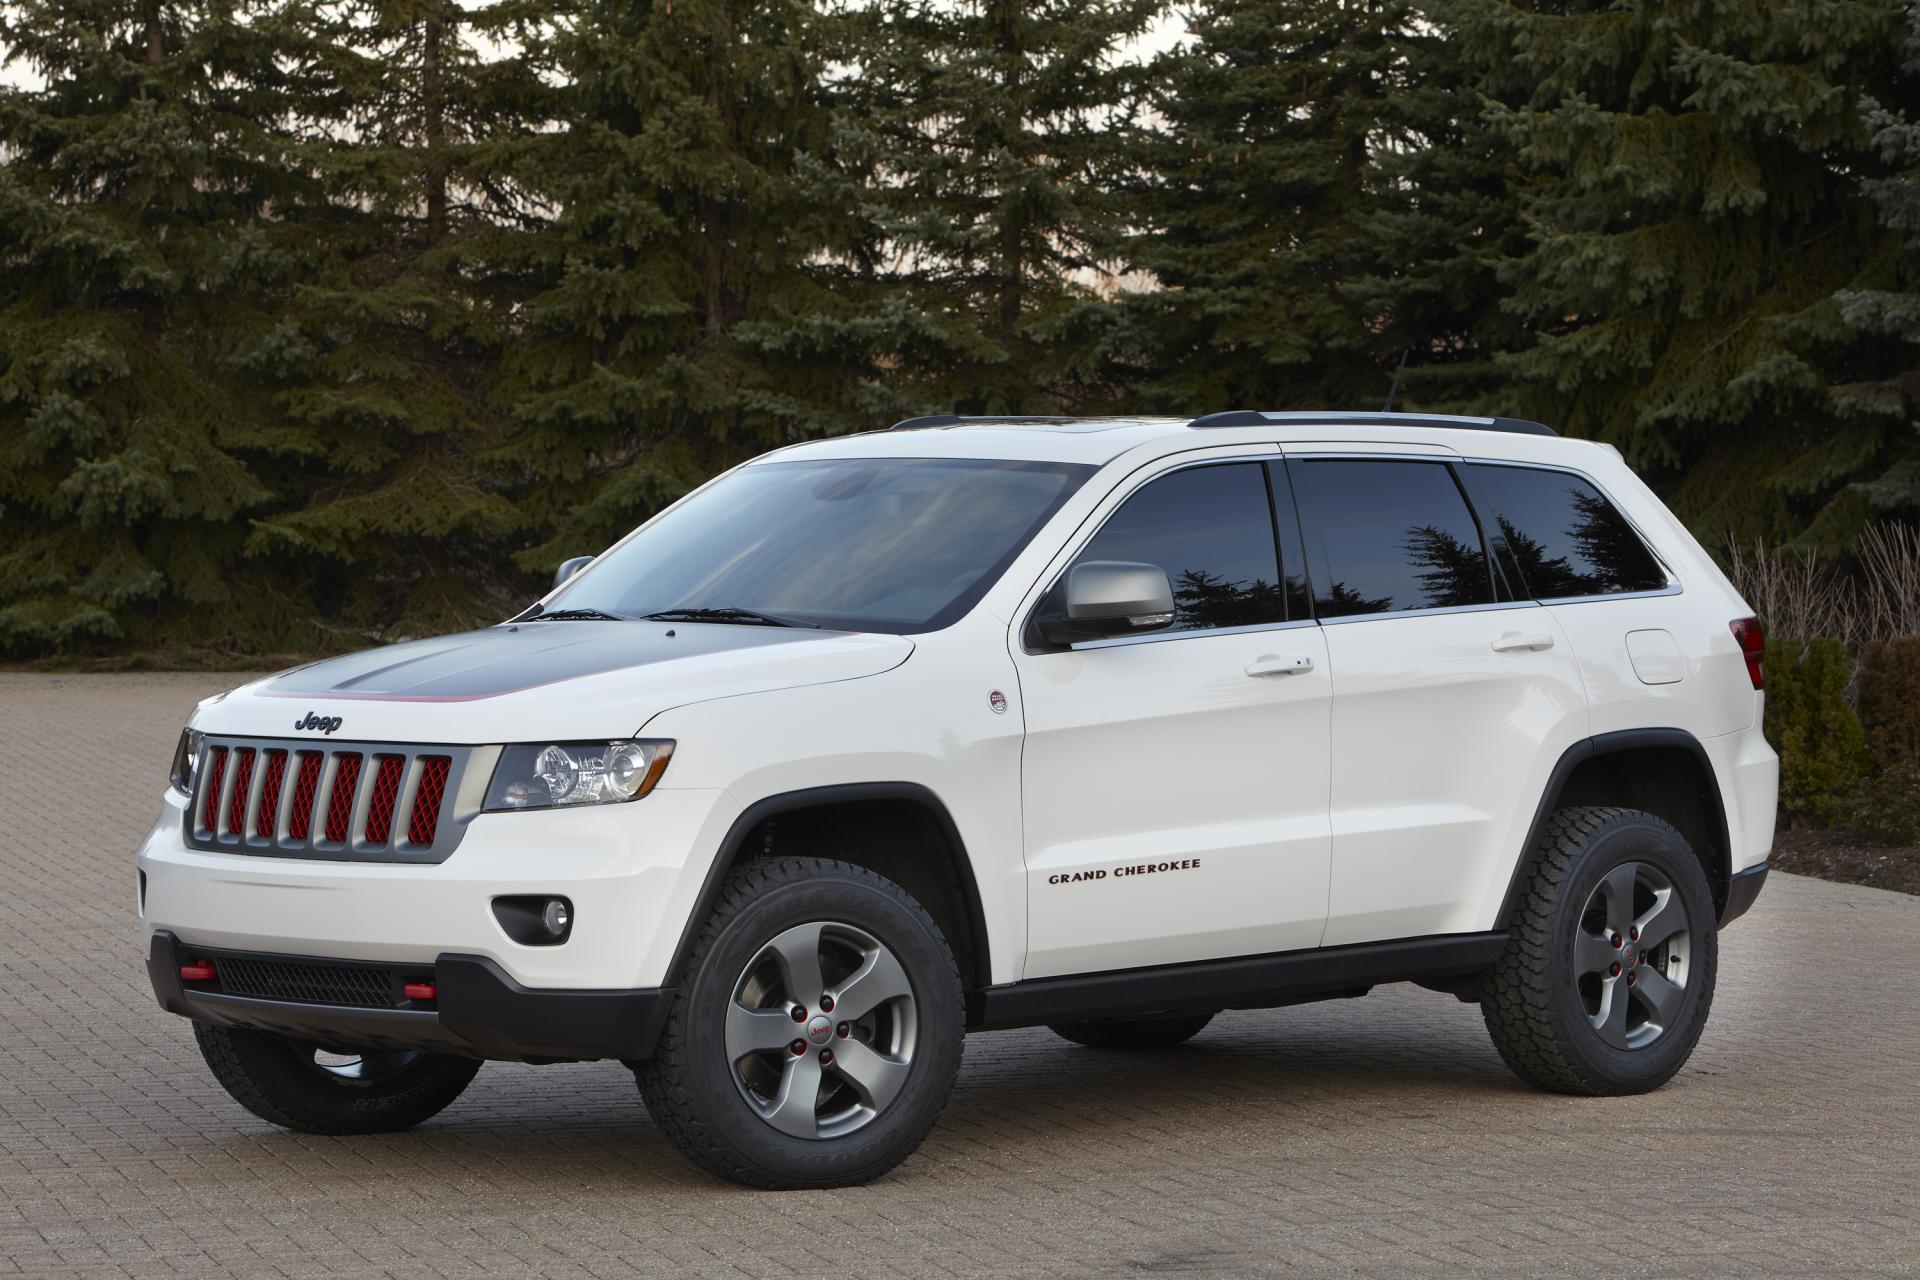 2012 jeep grand cherokee trailhawk concept news and information research and history. Black Bedroom Furniture Sets. Home Design Ideas